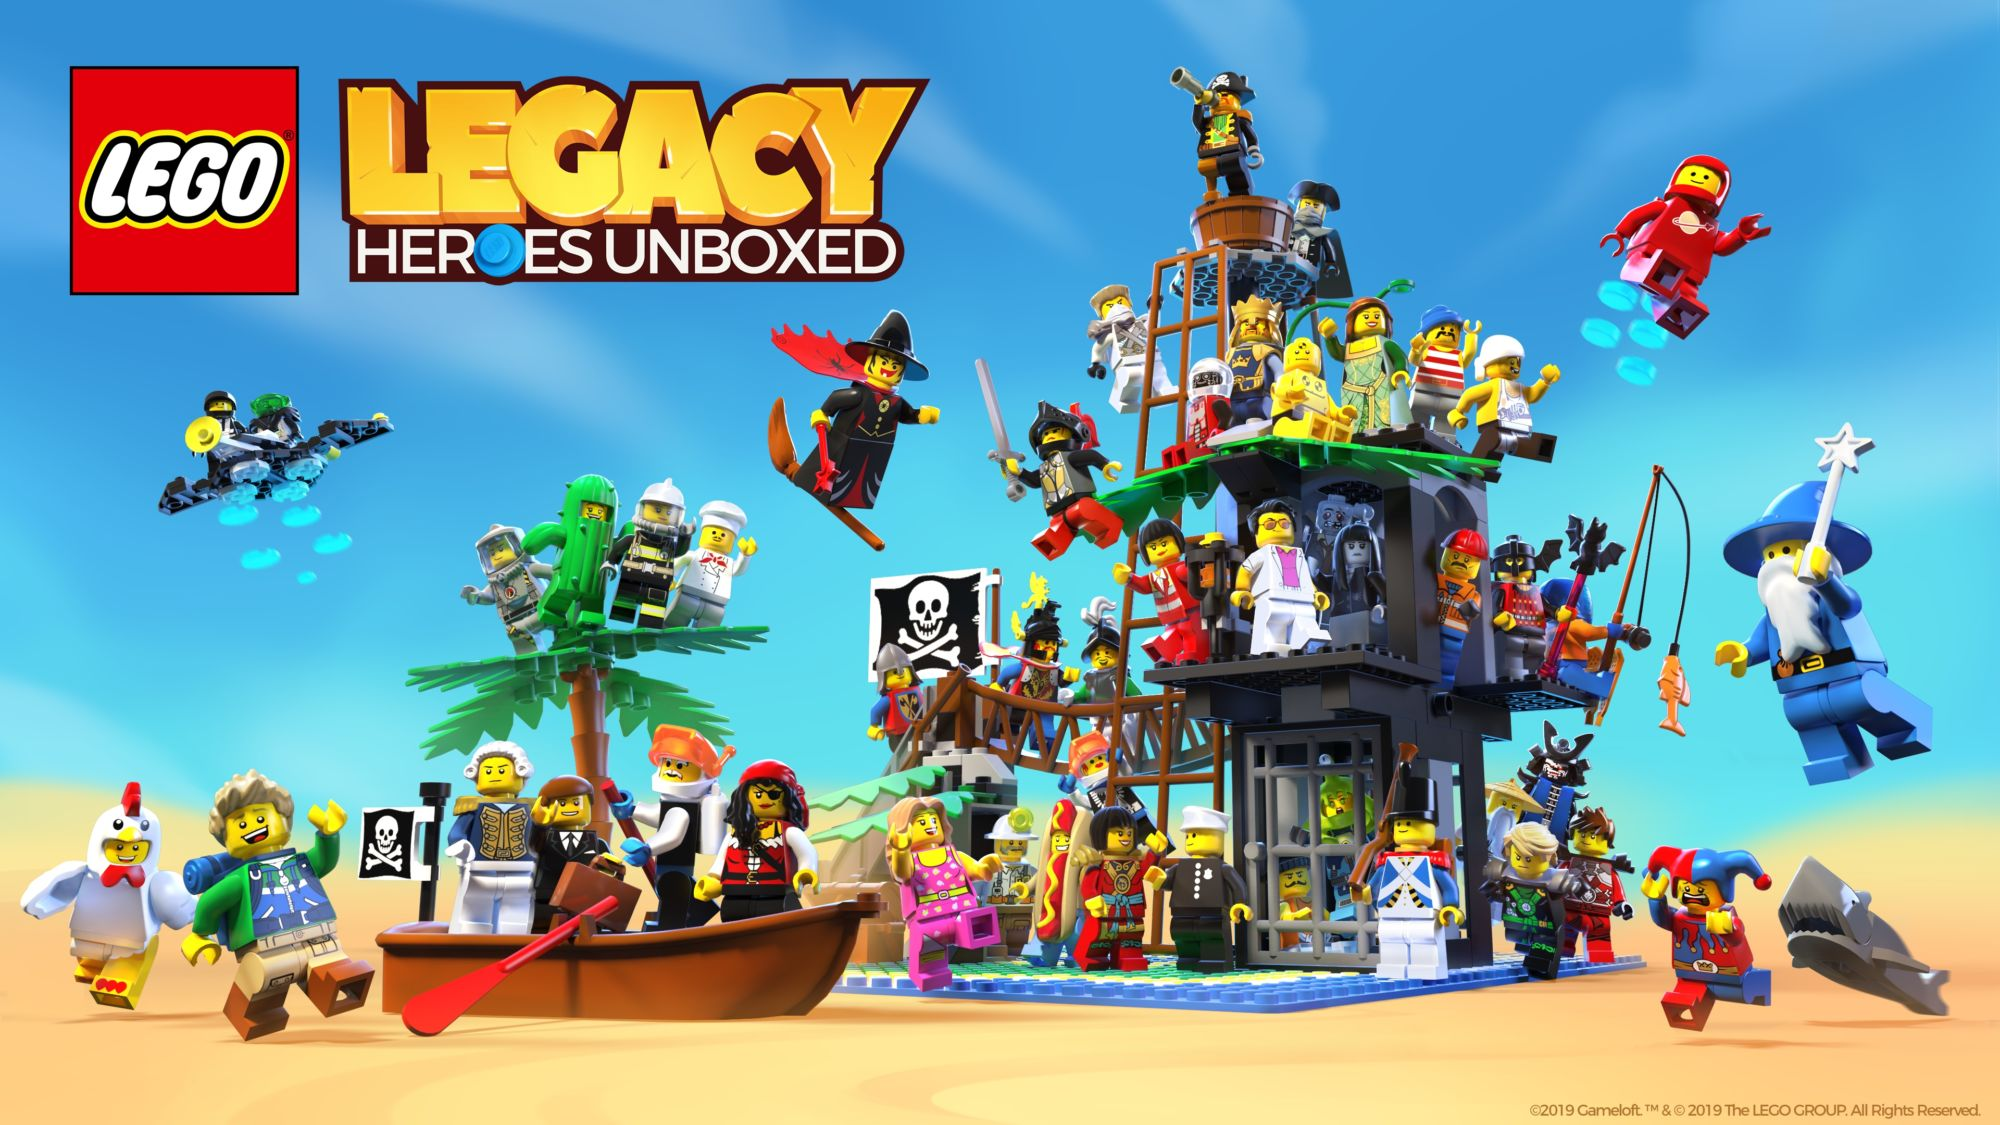 lego-legacy-heroes-unboxed-e3-2019-1